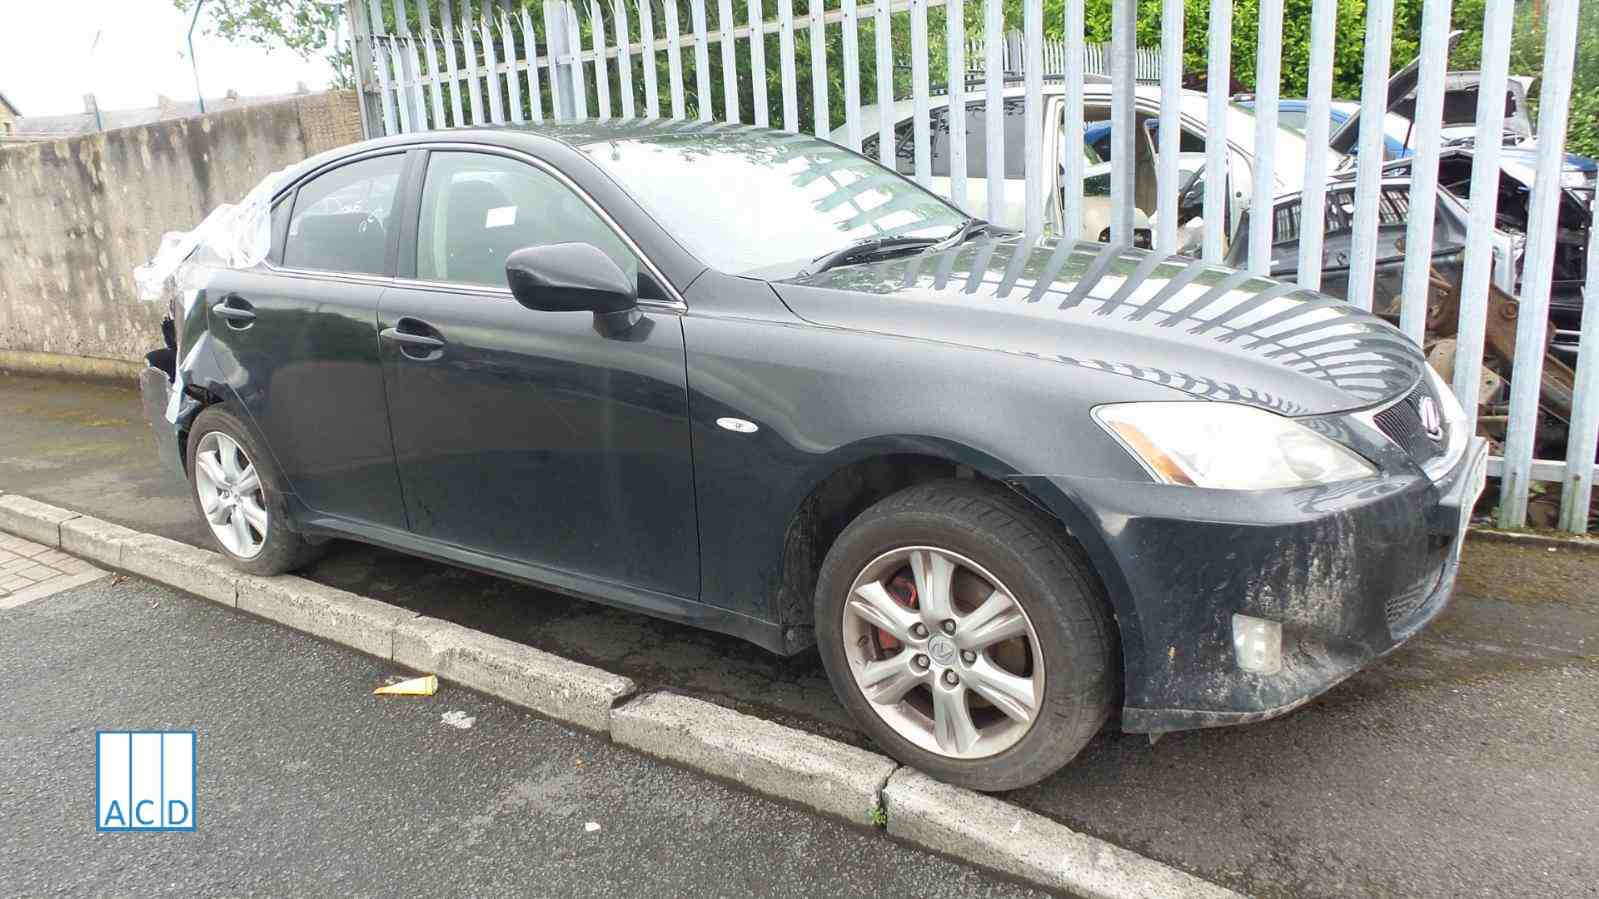 Lexus IS220D 2.2L Diesel 6-Speed manual 2007 #2878 01